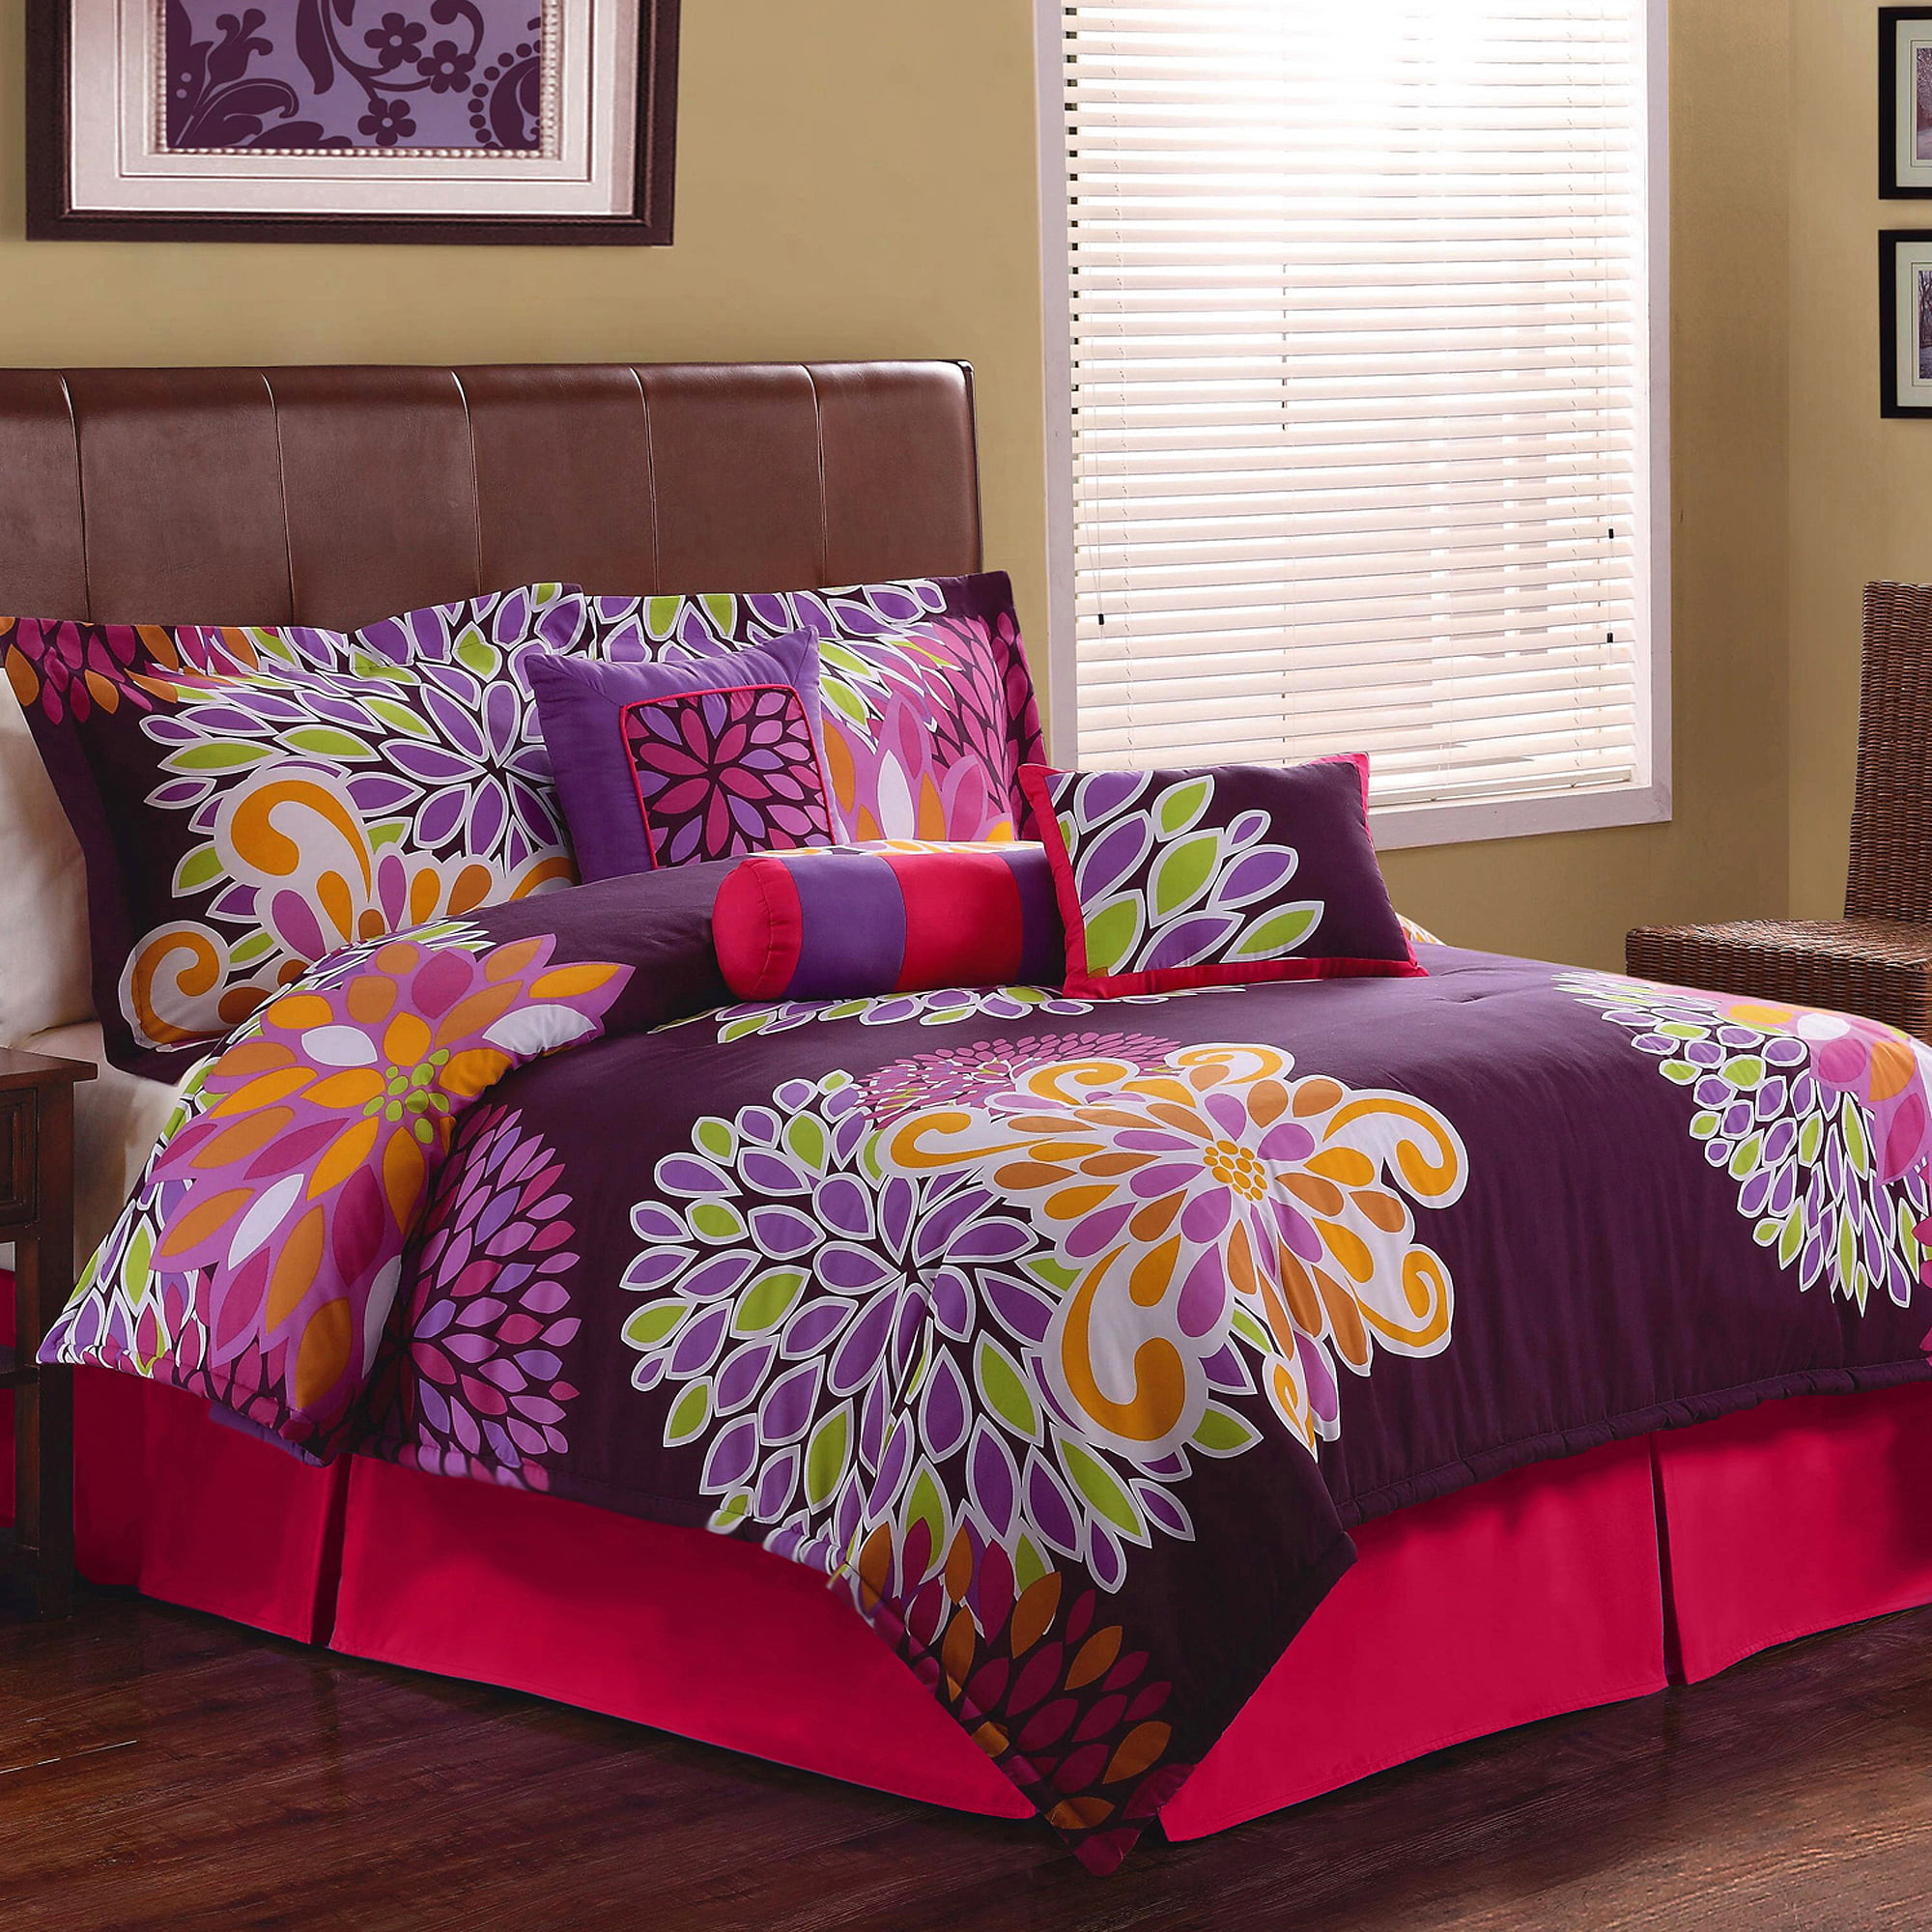 flower show bedding comforter set purple  walmartcom -